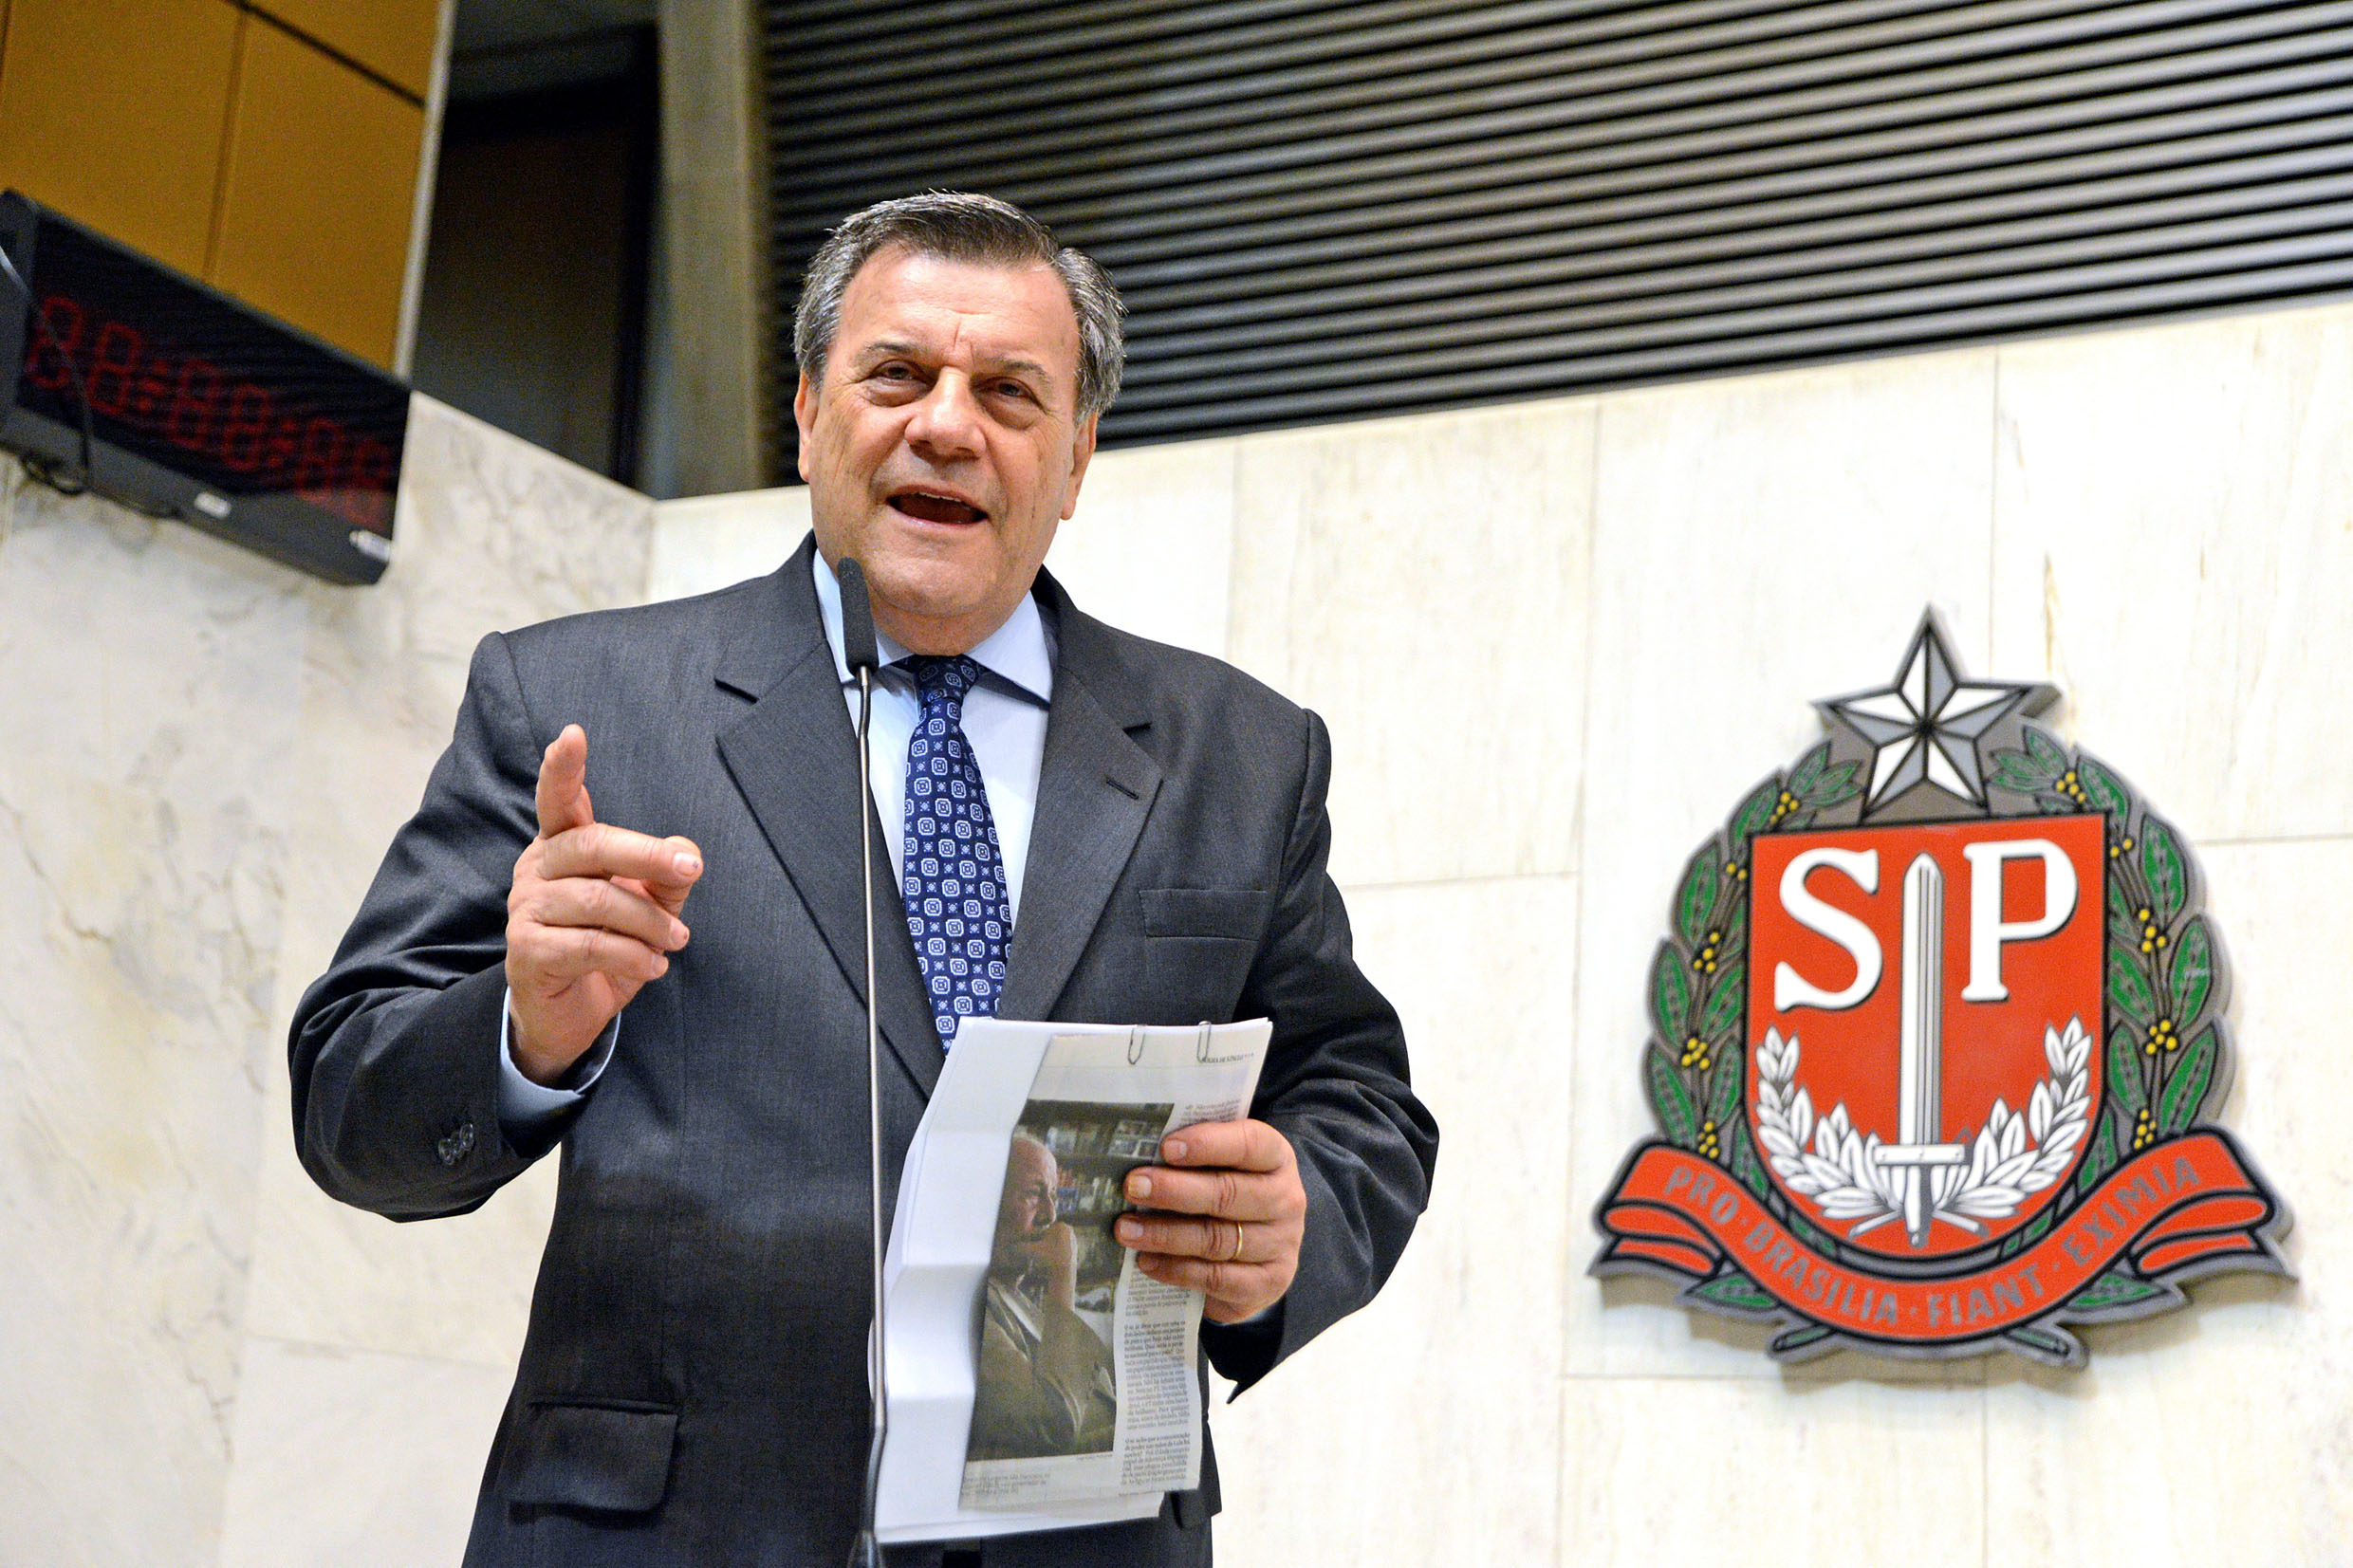 Roberto Massafera <a style='float:right' href='https://www3.al.sp.gov.br/repositorio/noticia/N-02-2019/fg230339.jpg' target=_blank><img src='/_img/material-file-download-white.png' width='14px' alt='Clique para baixar a imagem'></a>